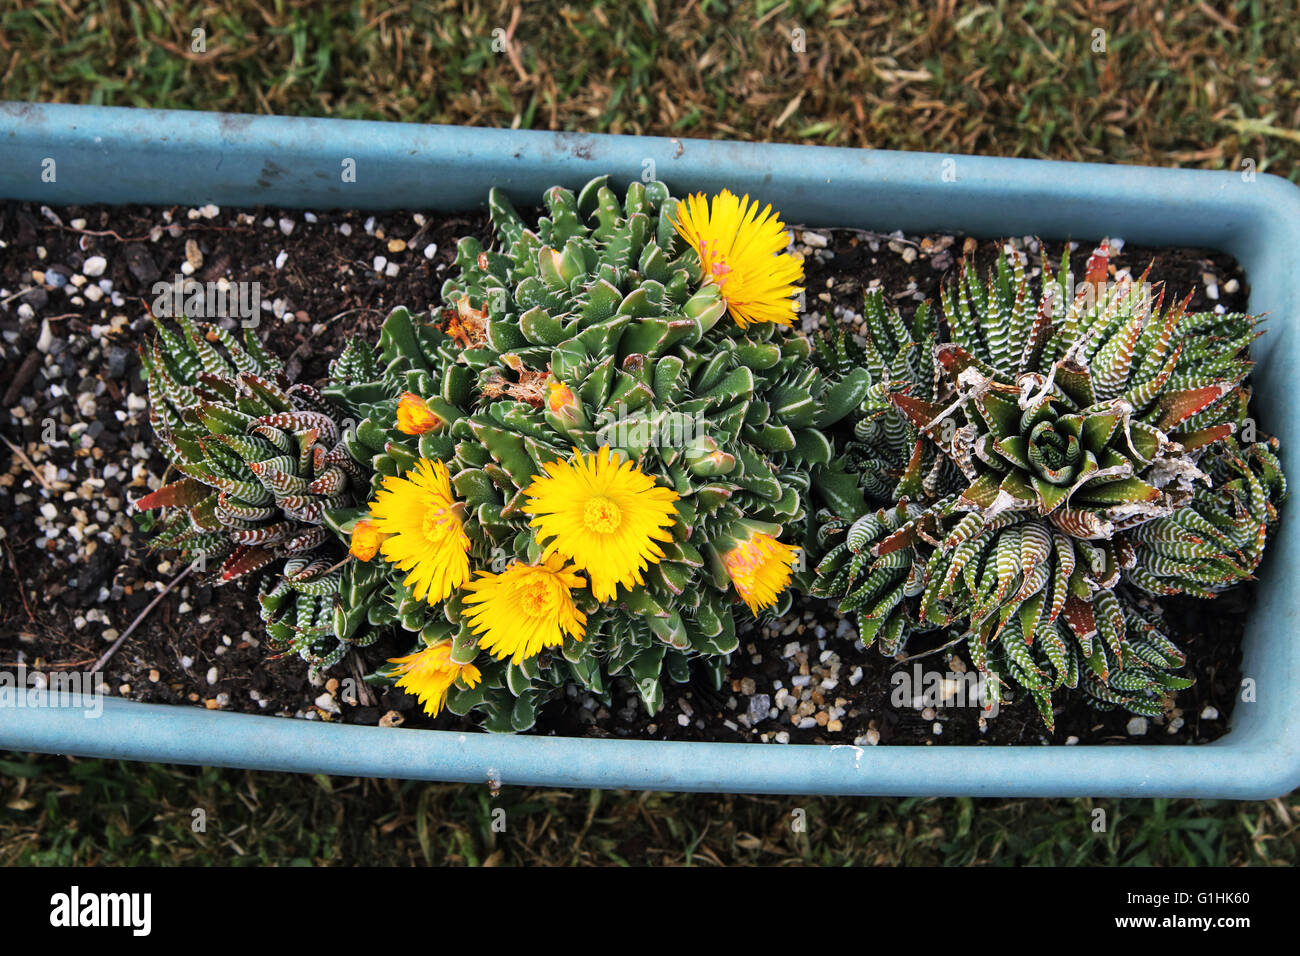 Tiger Jaws Succulent Plant Or Known As Faucaria Tigrina With Yellow